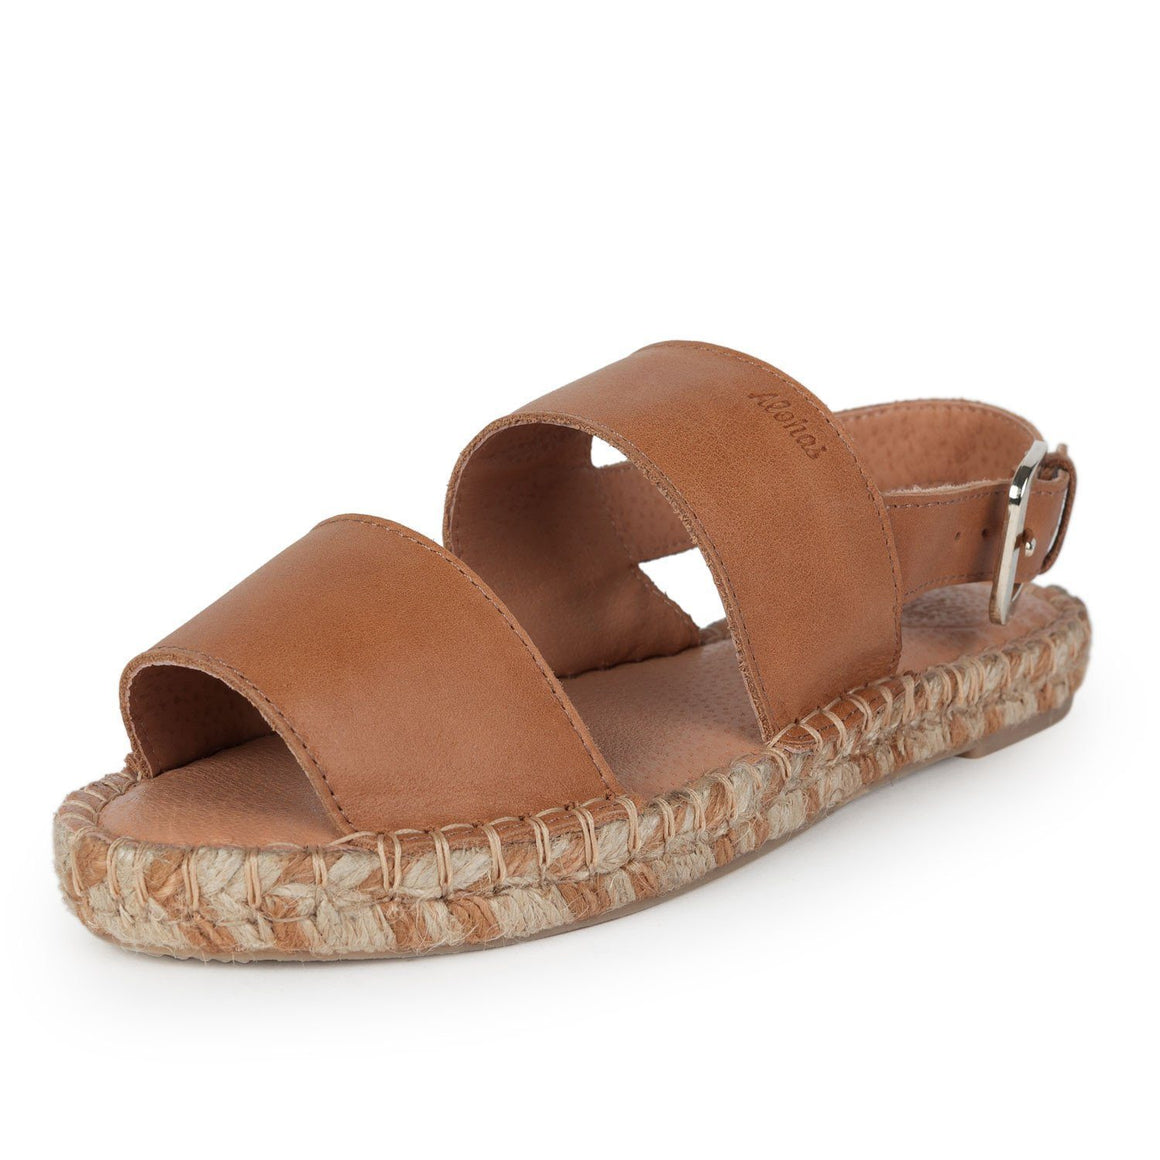 Double Strap Camel Flat Sandals Alohas fashion espadrilles flat leather